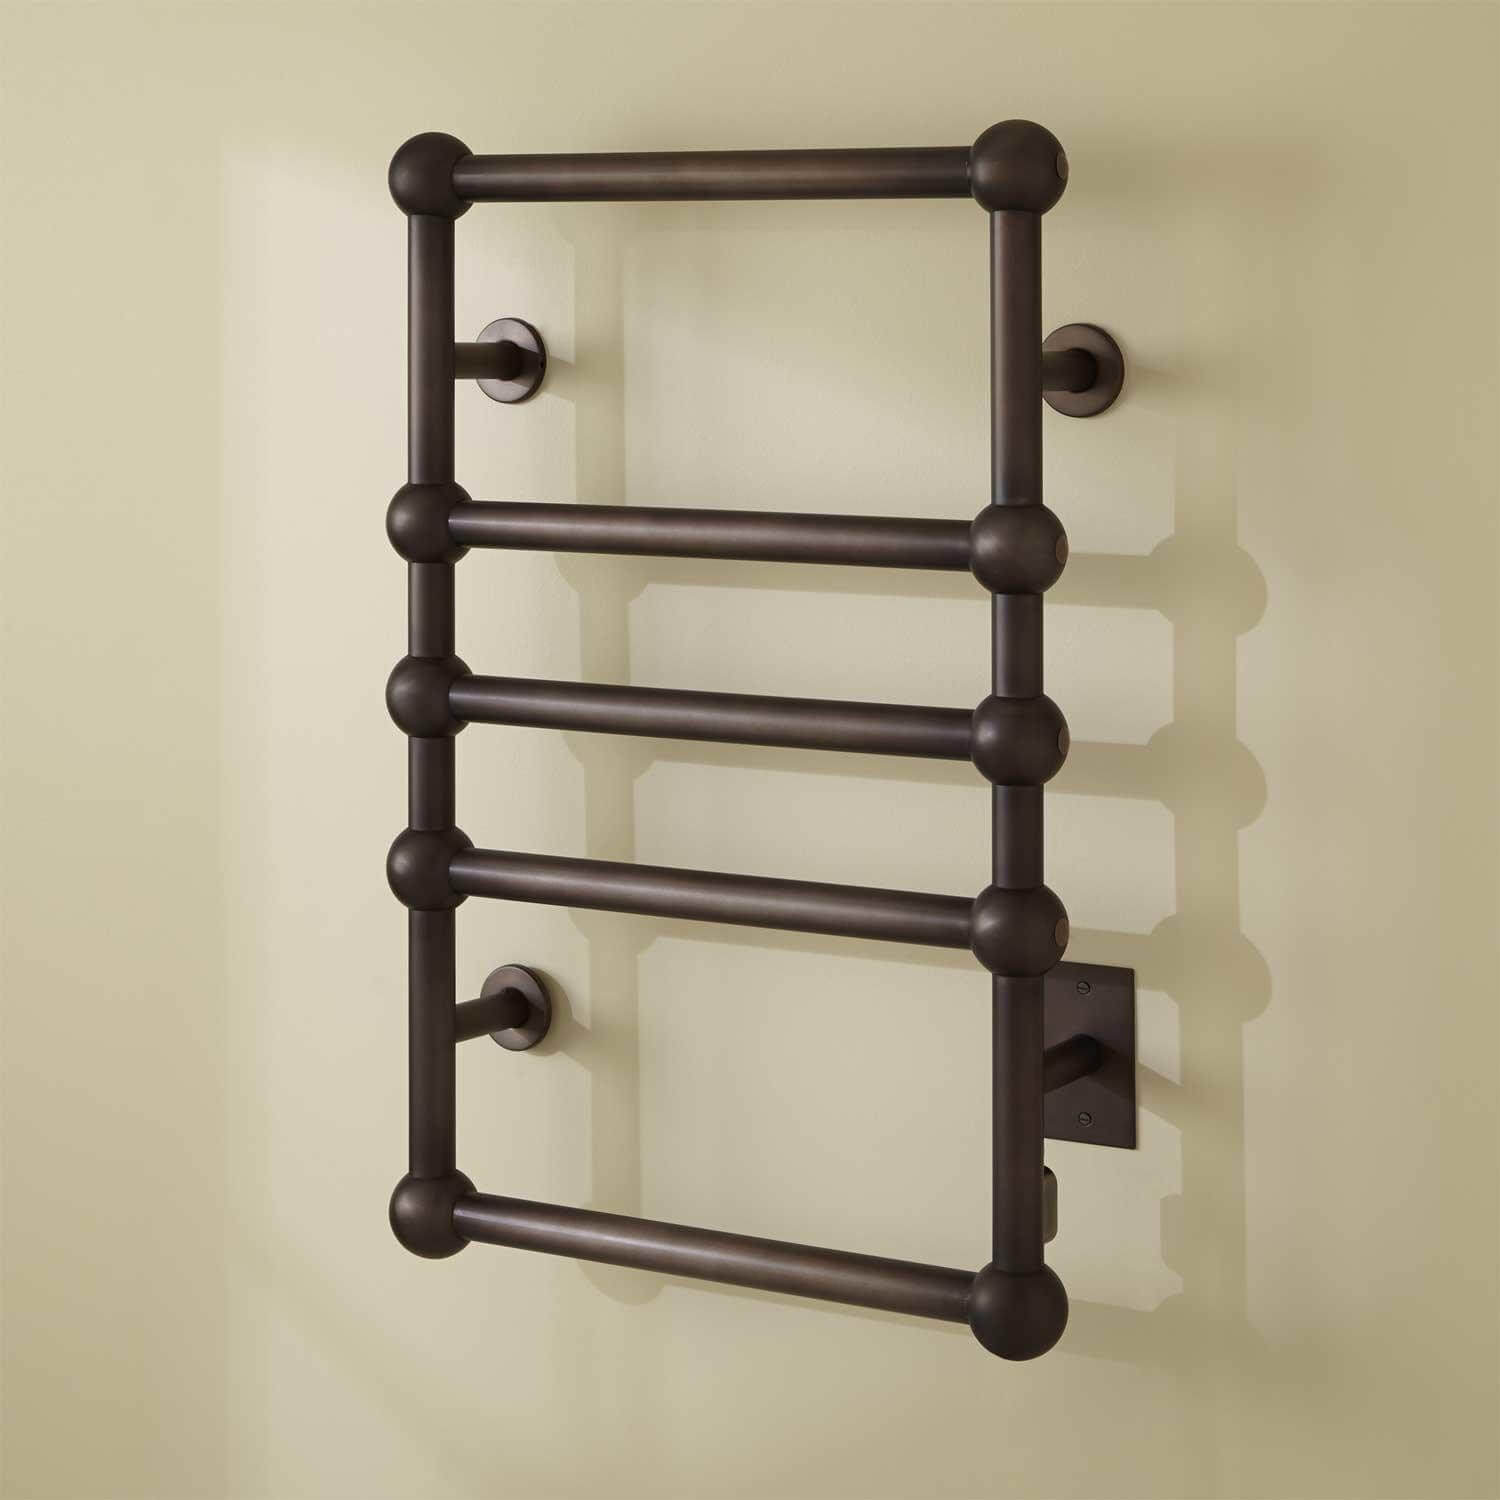 pros and cons hardwired towel warmers